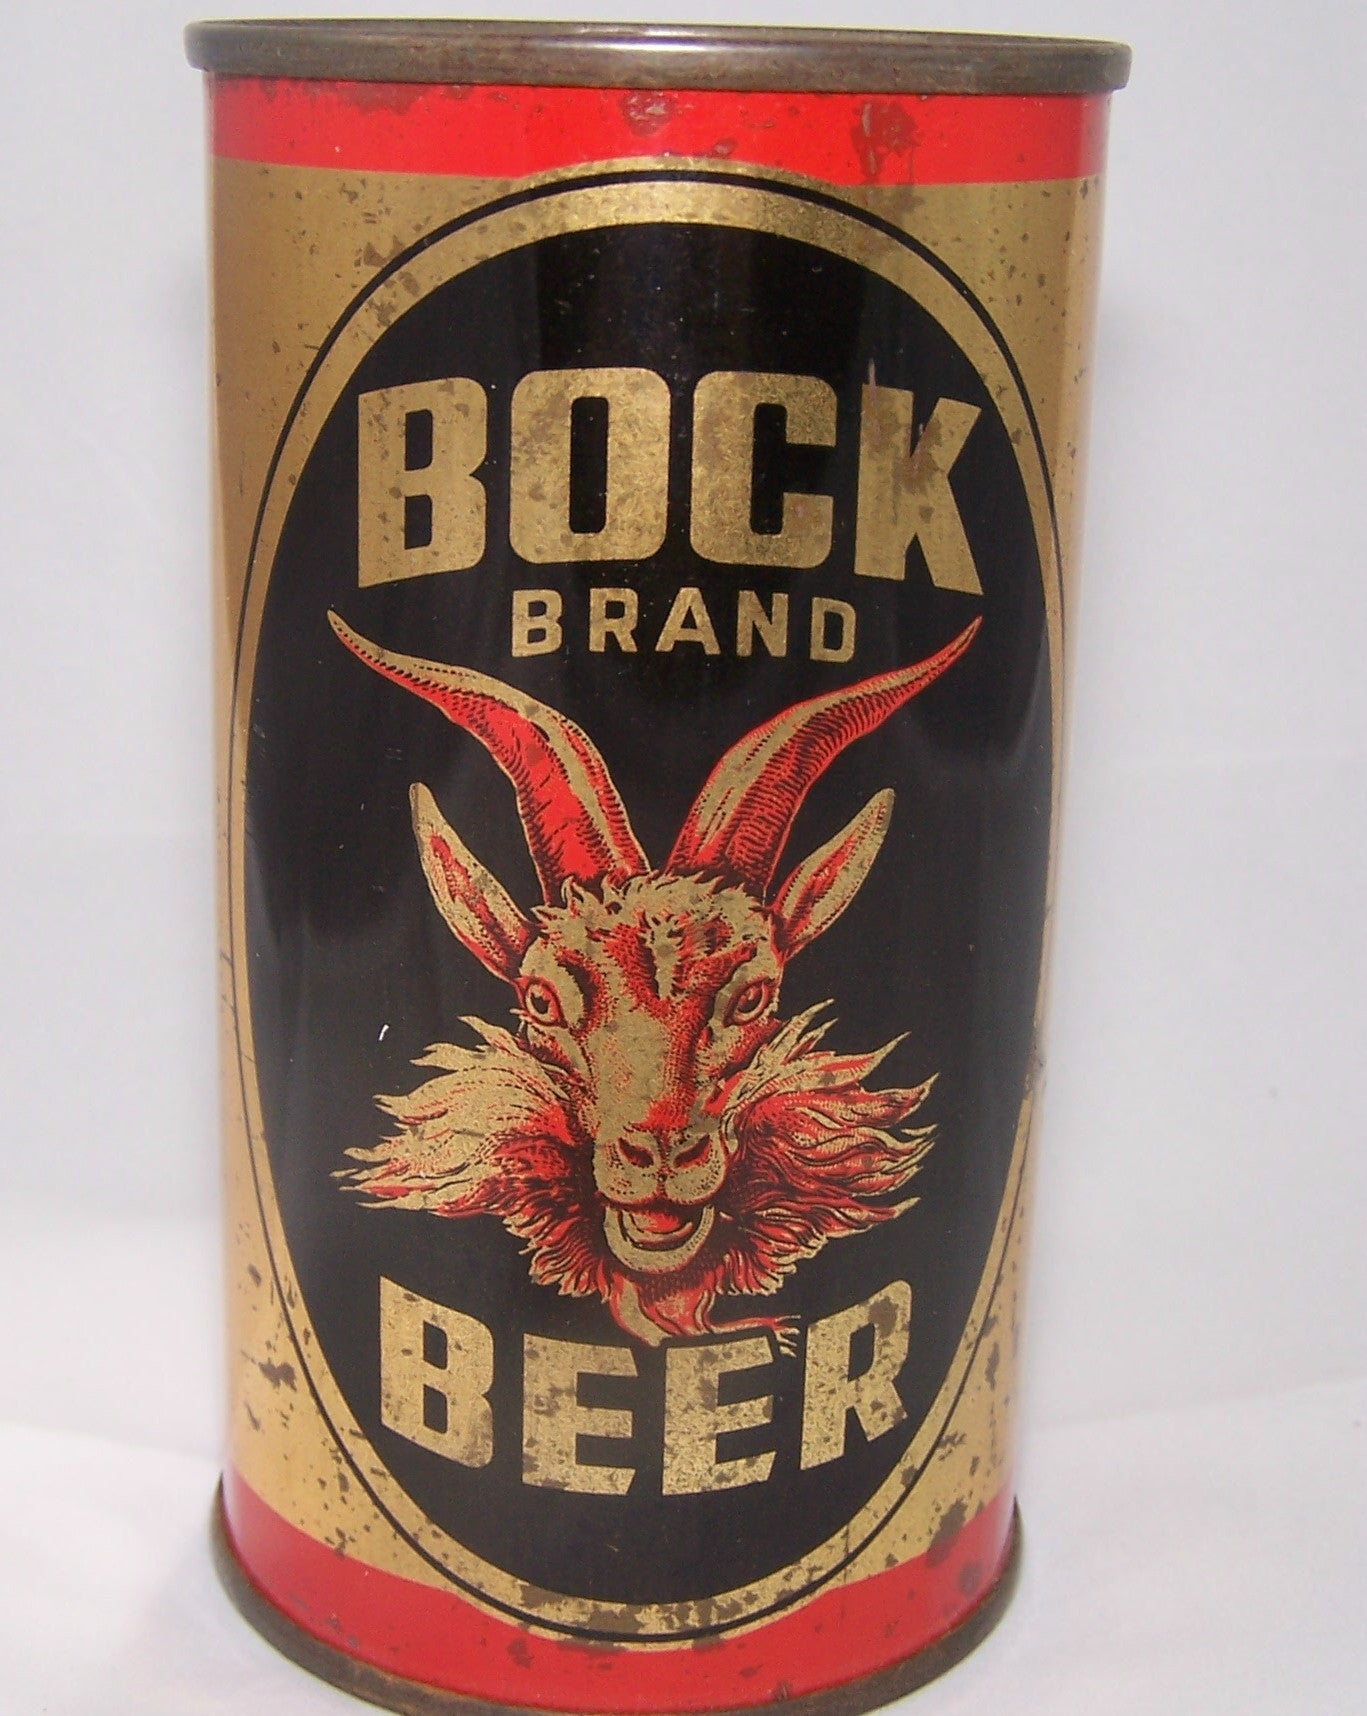 Bock Brand Beer, USBC 40-4, Grade 1- Sold on 10/10/15